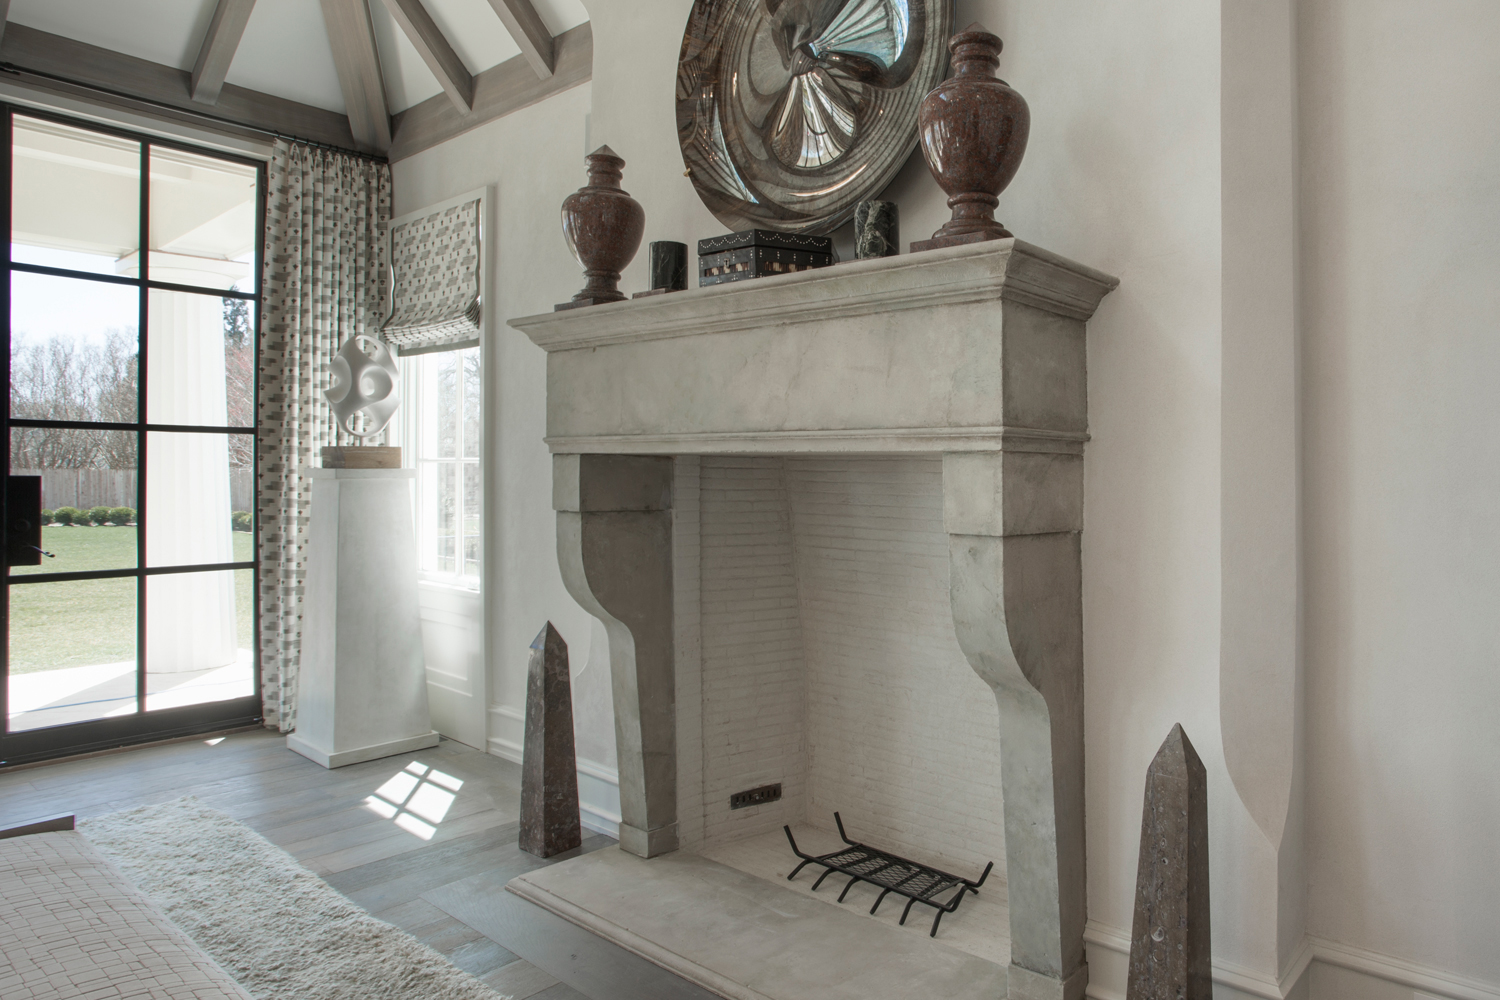 <span>fireplace detail</span><span  class='incontracts'>IN CONTRACT </span>